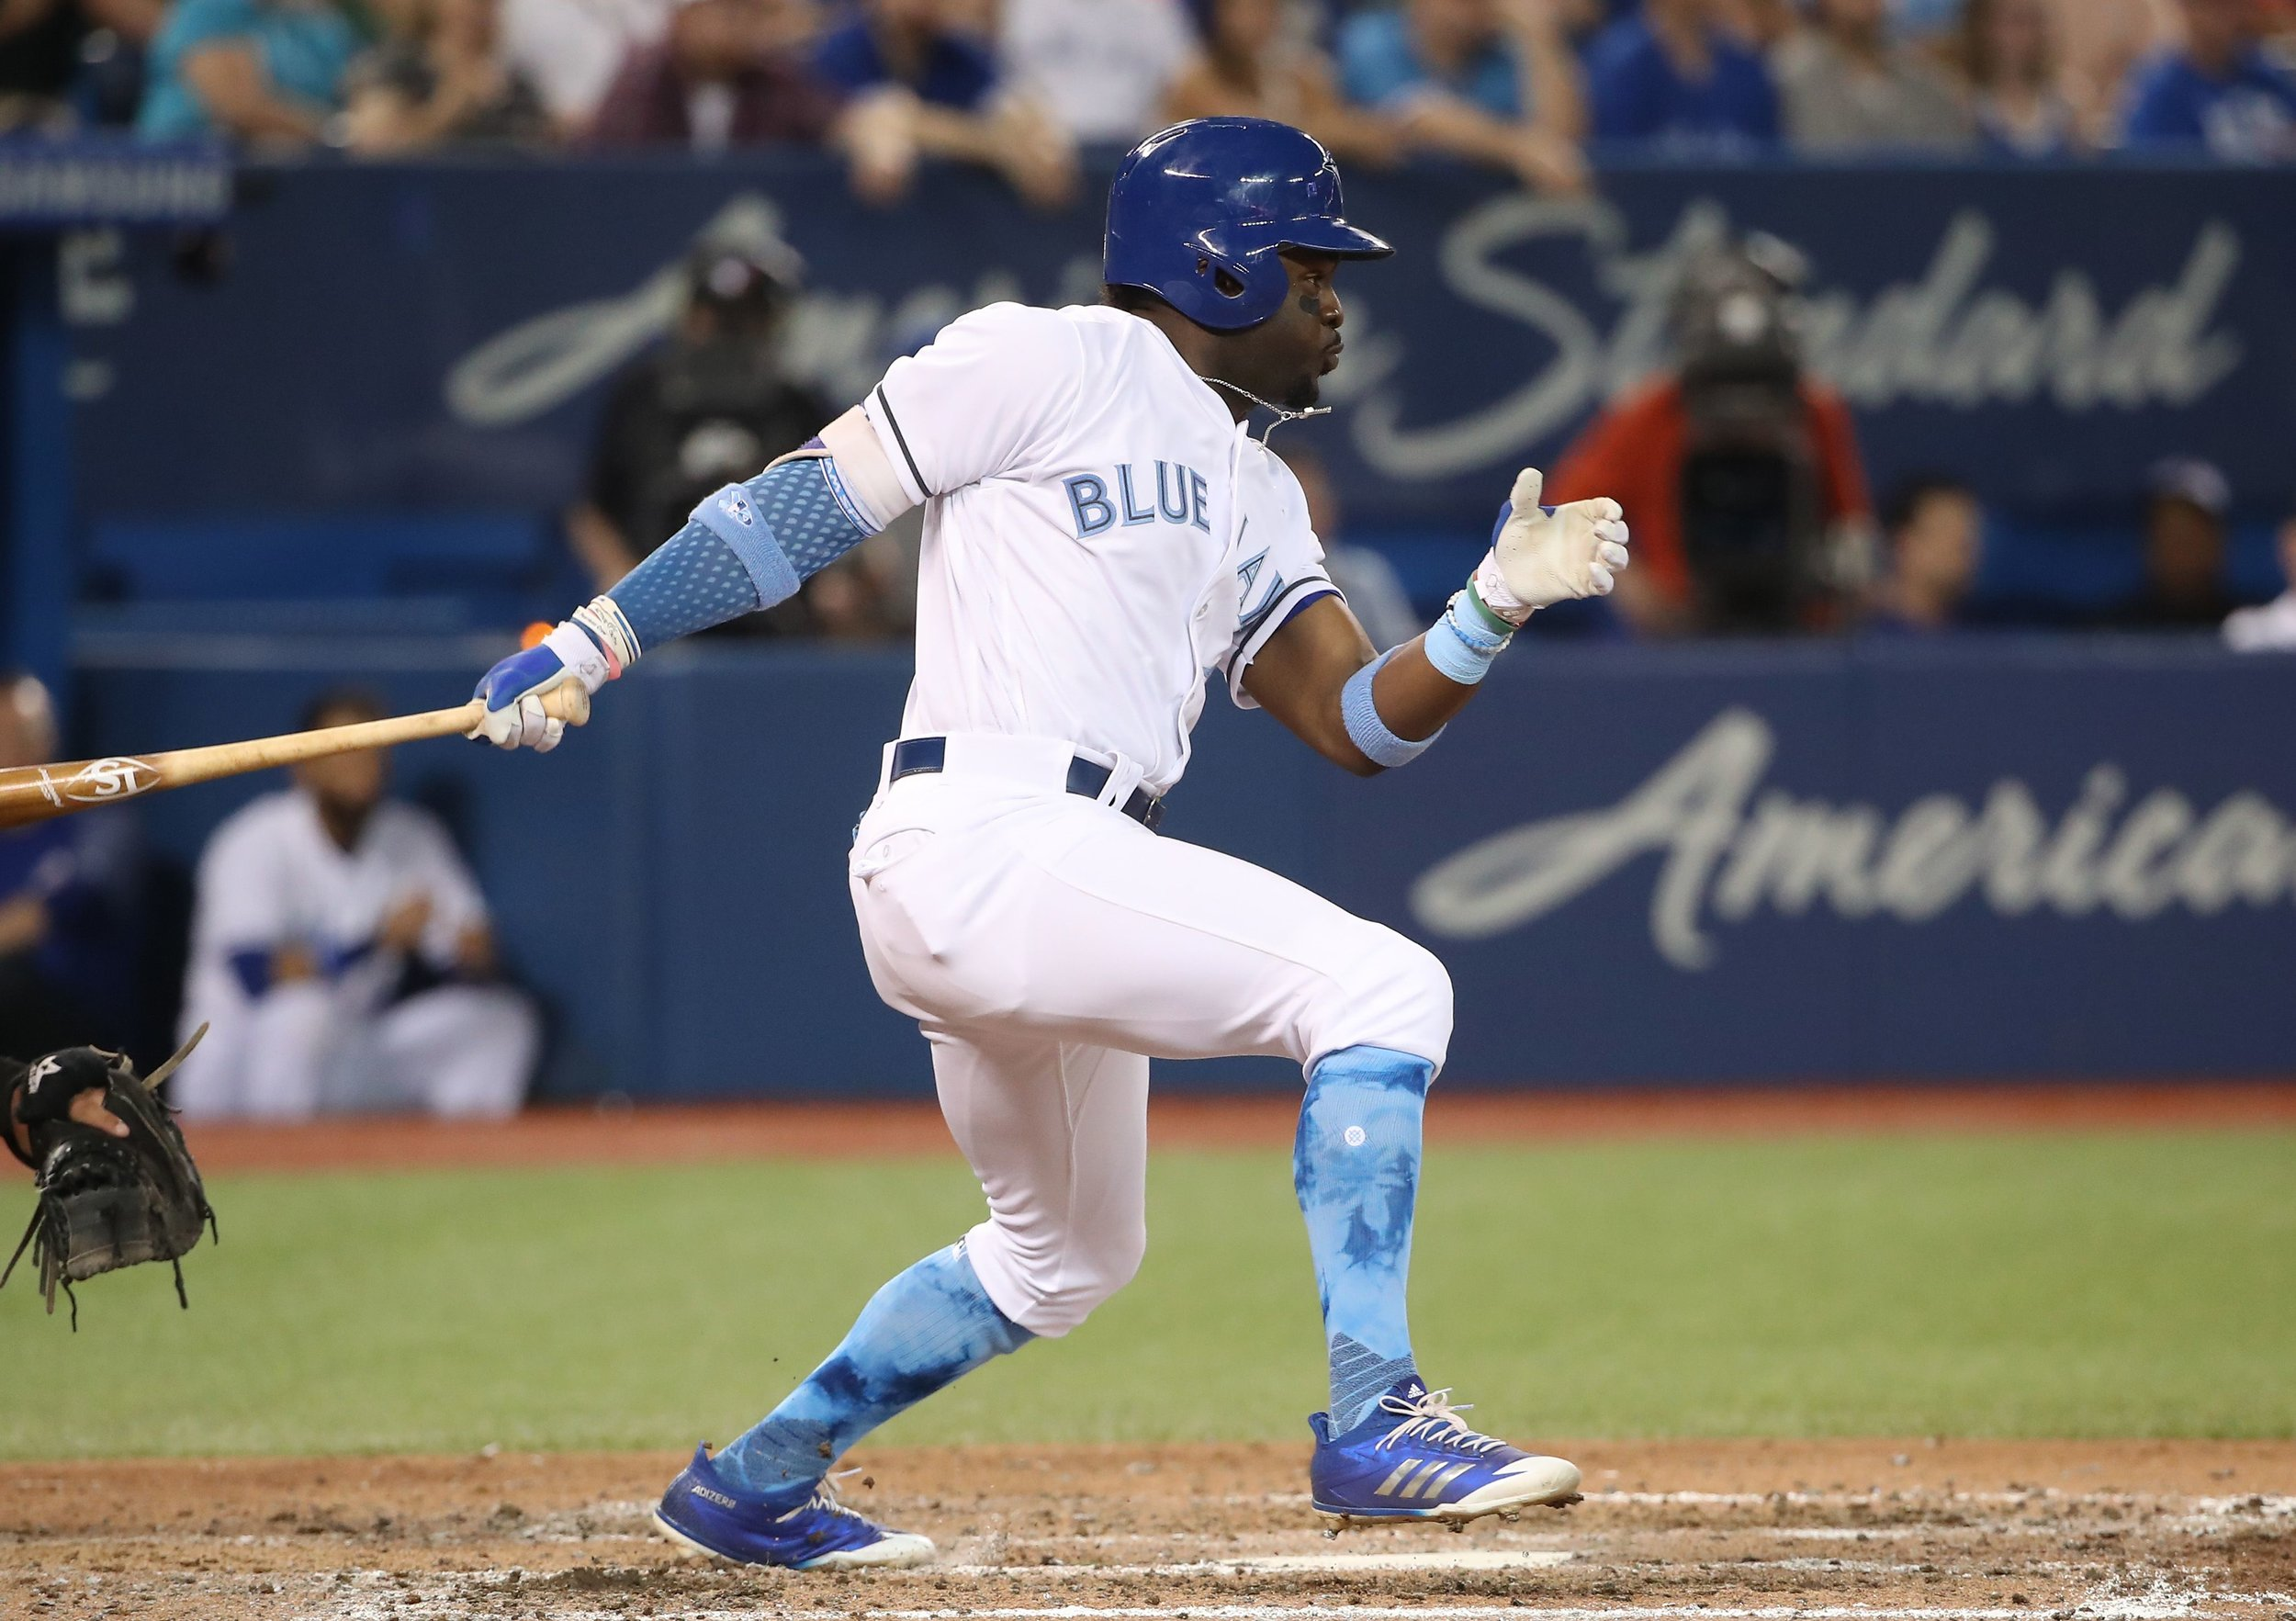 The Toronto Blue Jays have recalled outfielder Dwight Smith Jr. from triple-A Buffalo.